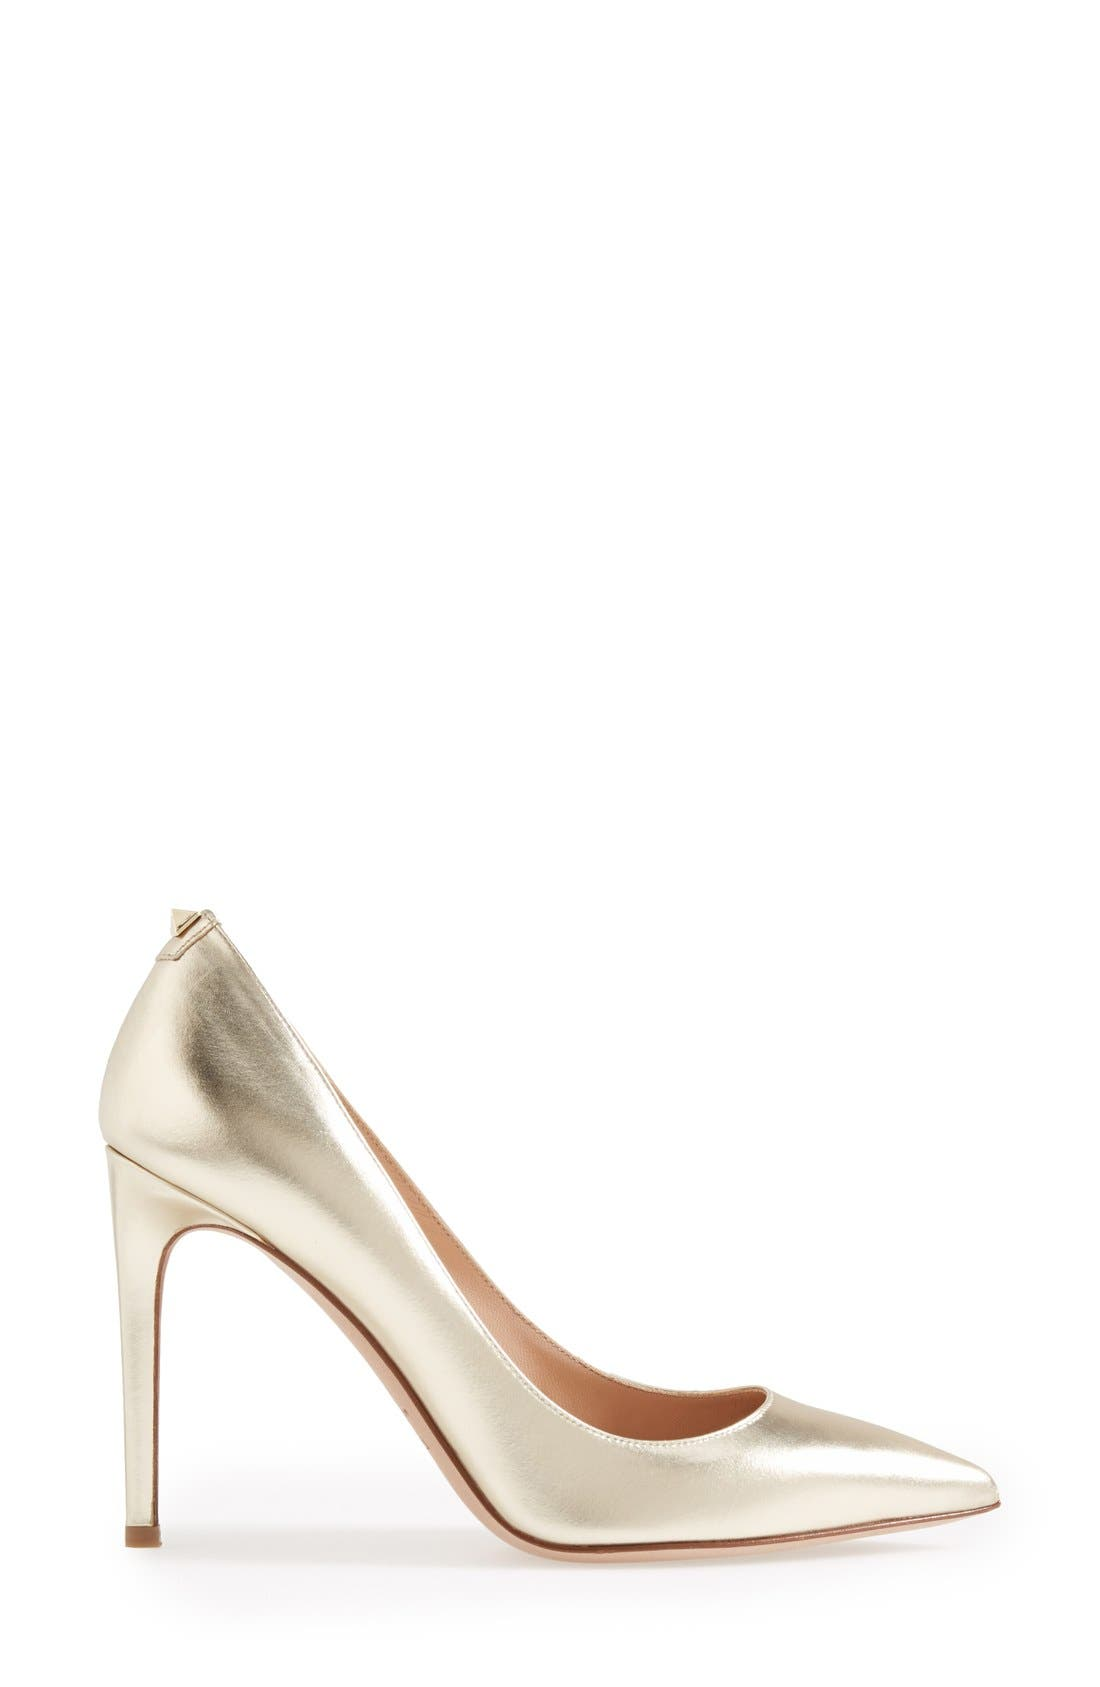 'Rockstud' Pump,                             Alternate thumbnail 4, color,                             Platino